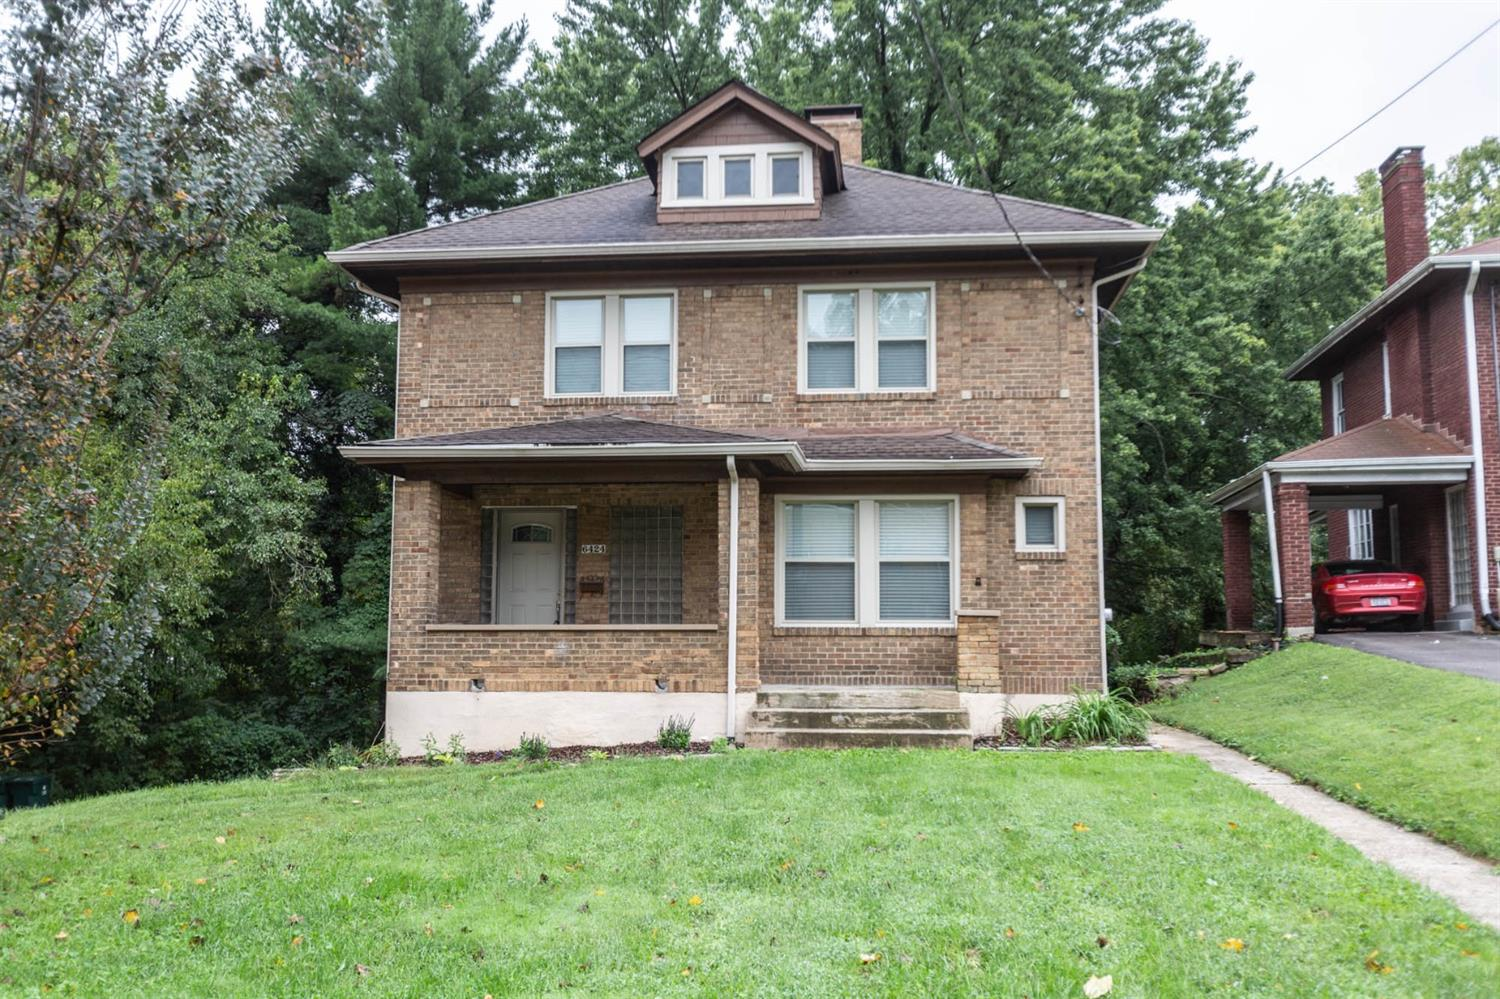 6424 Montgomery Rd Kennedy Hts., OH